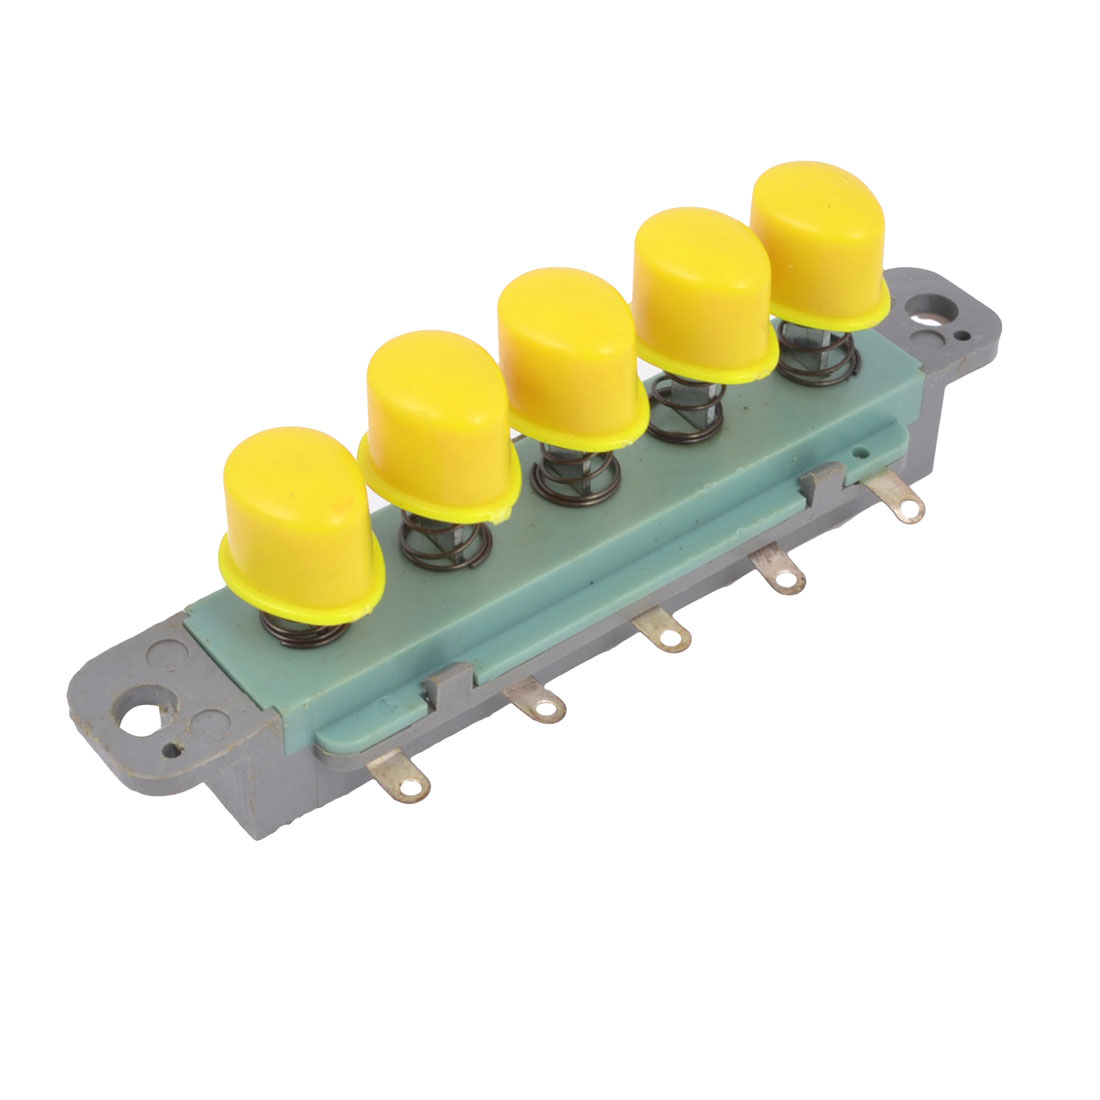 AC 250V 1A 5 Yellow Button Piano Type Key Switch for Kitchen Range Hood